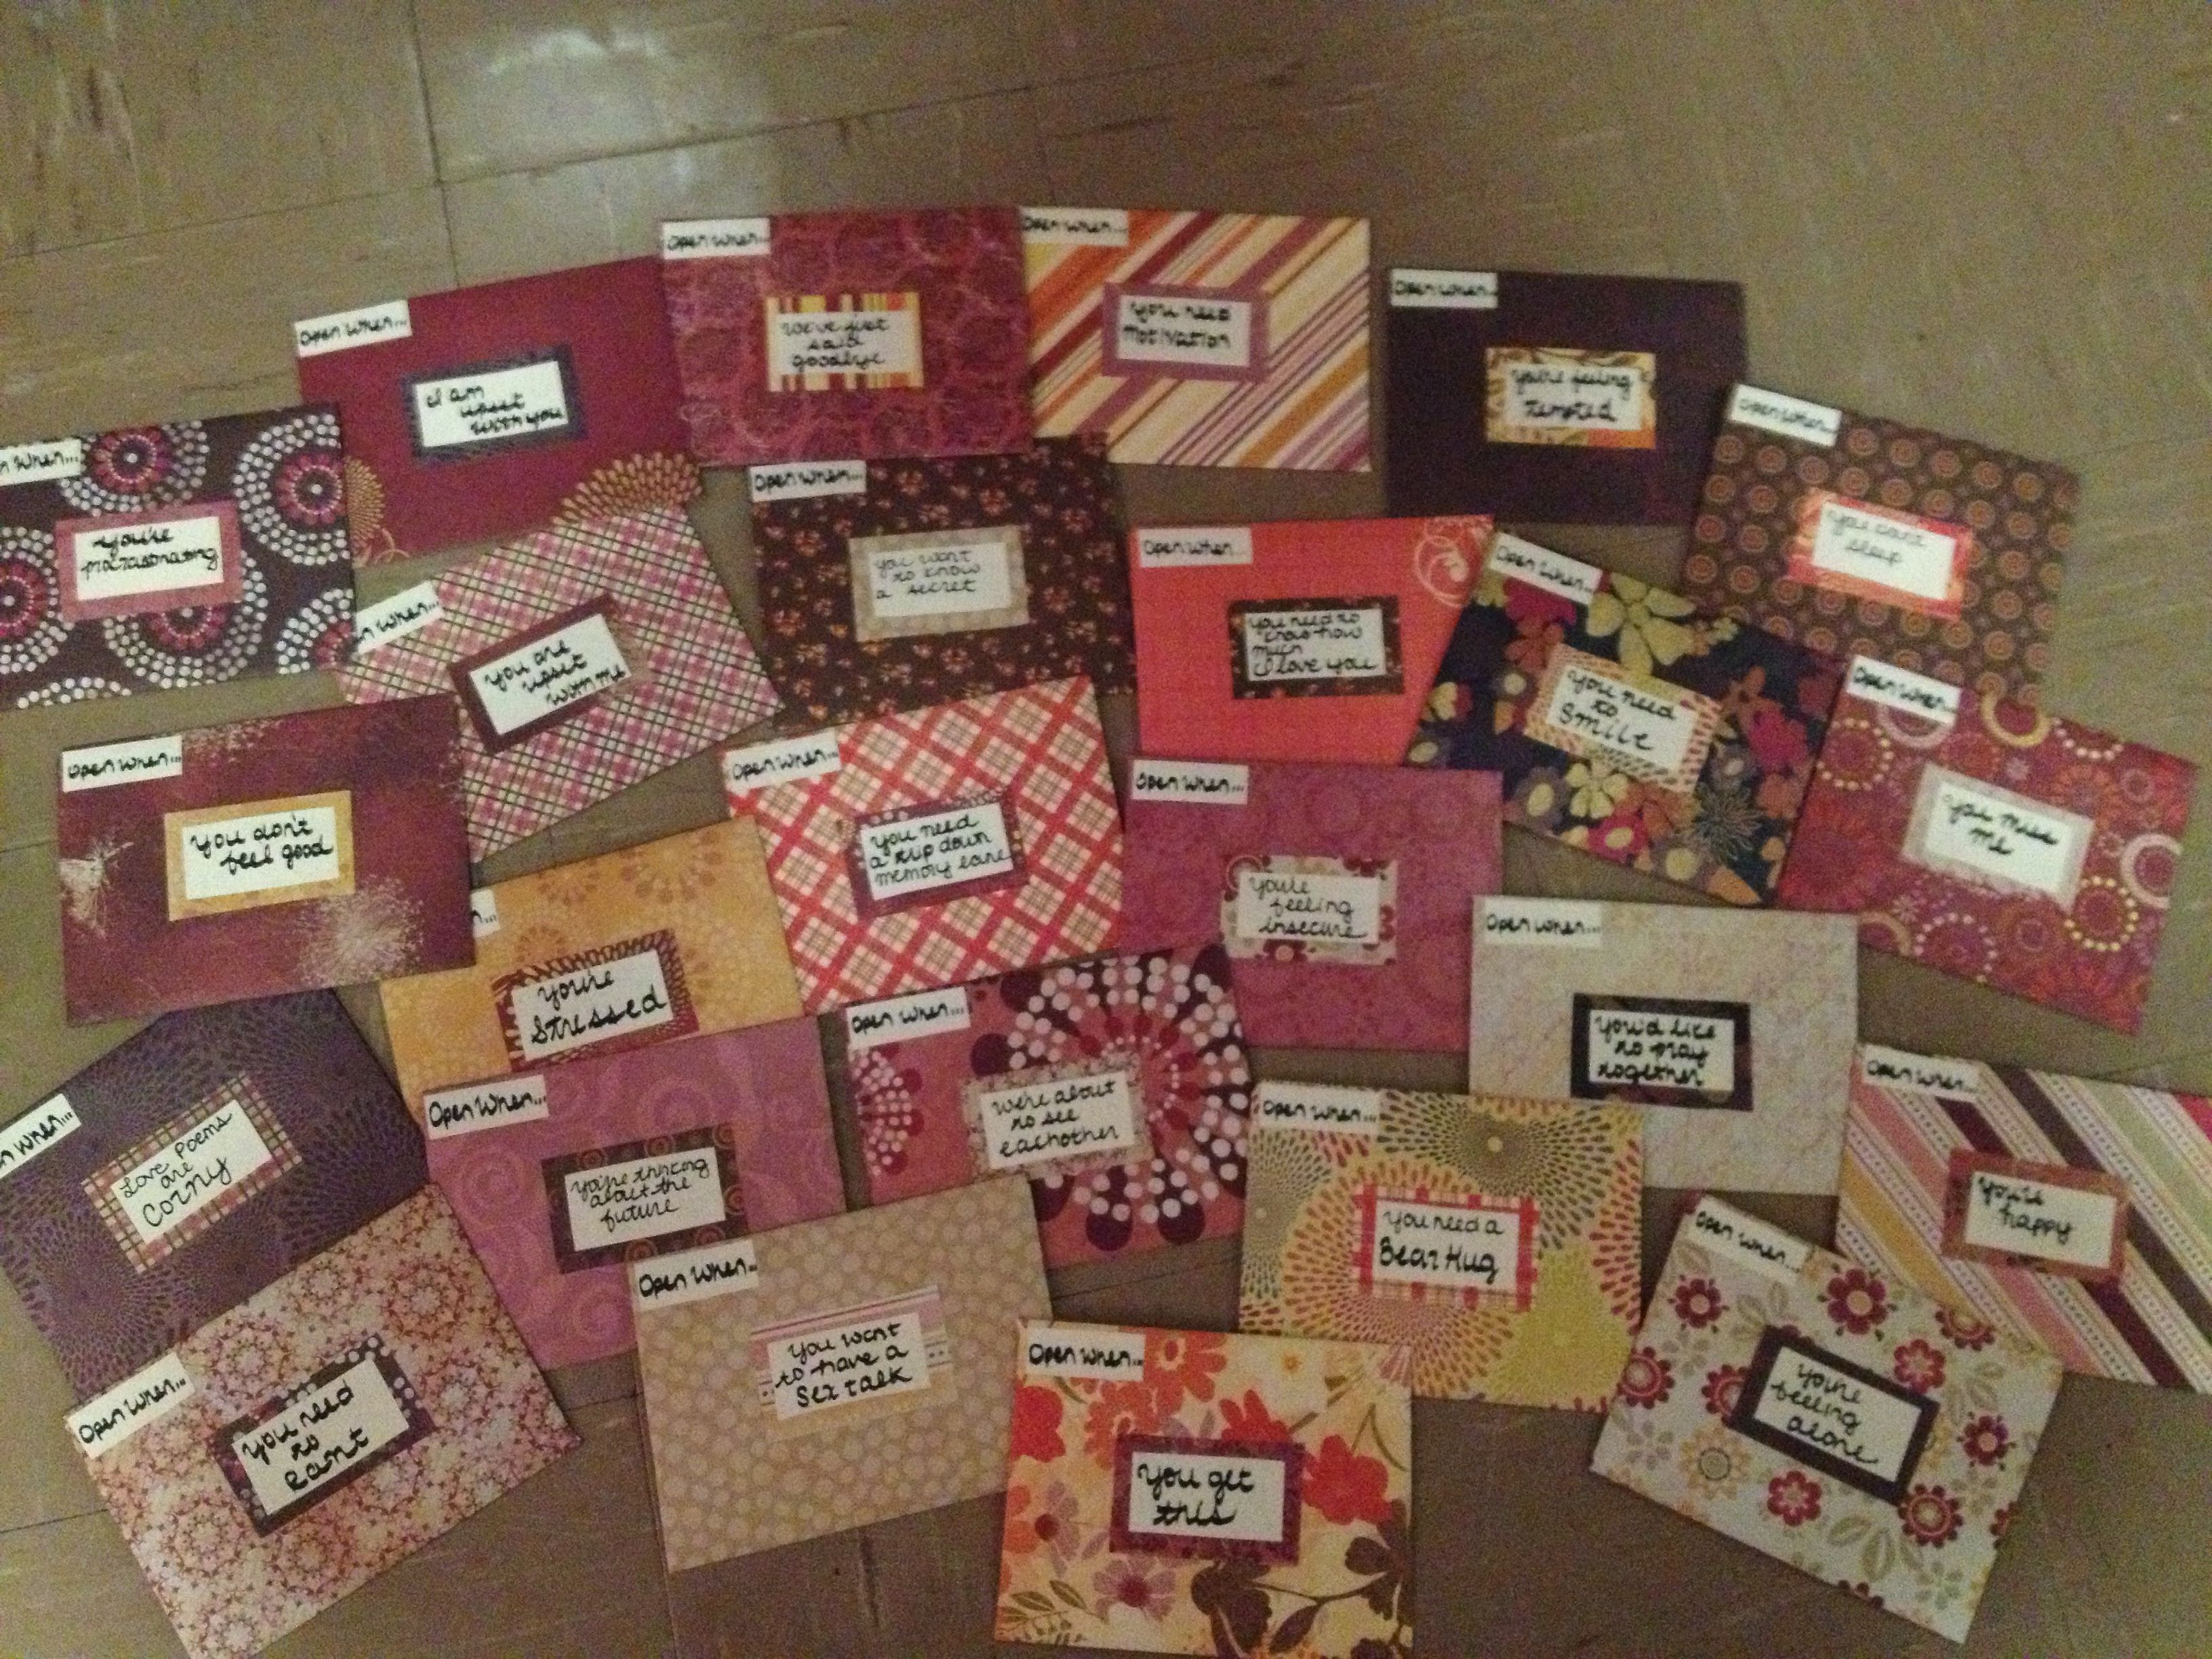 Scrapbook ideas goodbye - More Open When Ideas Topics When You Get This Feeling Alone